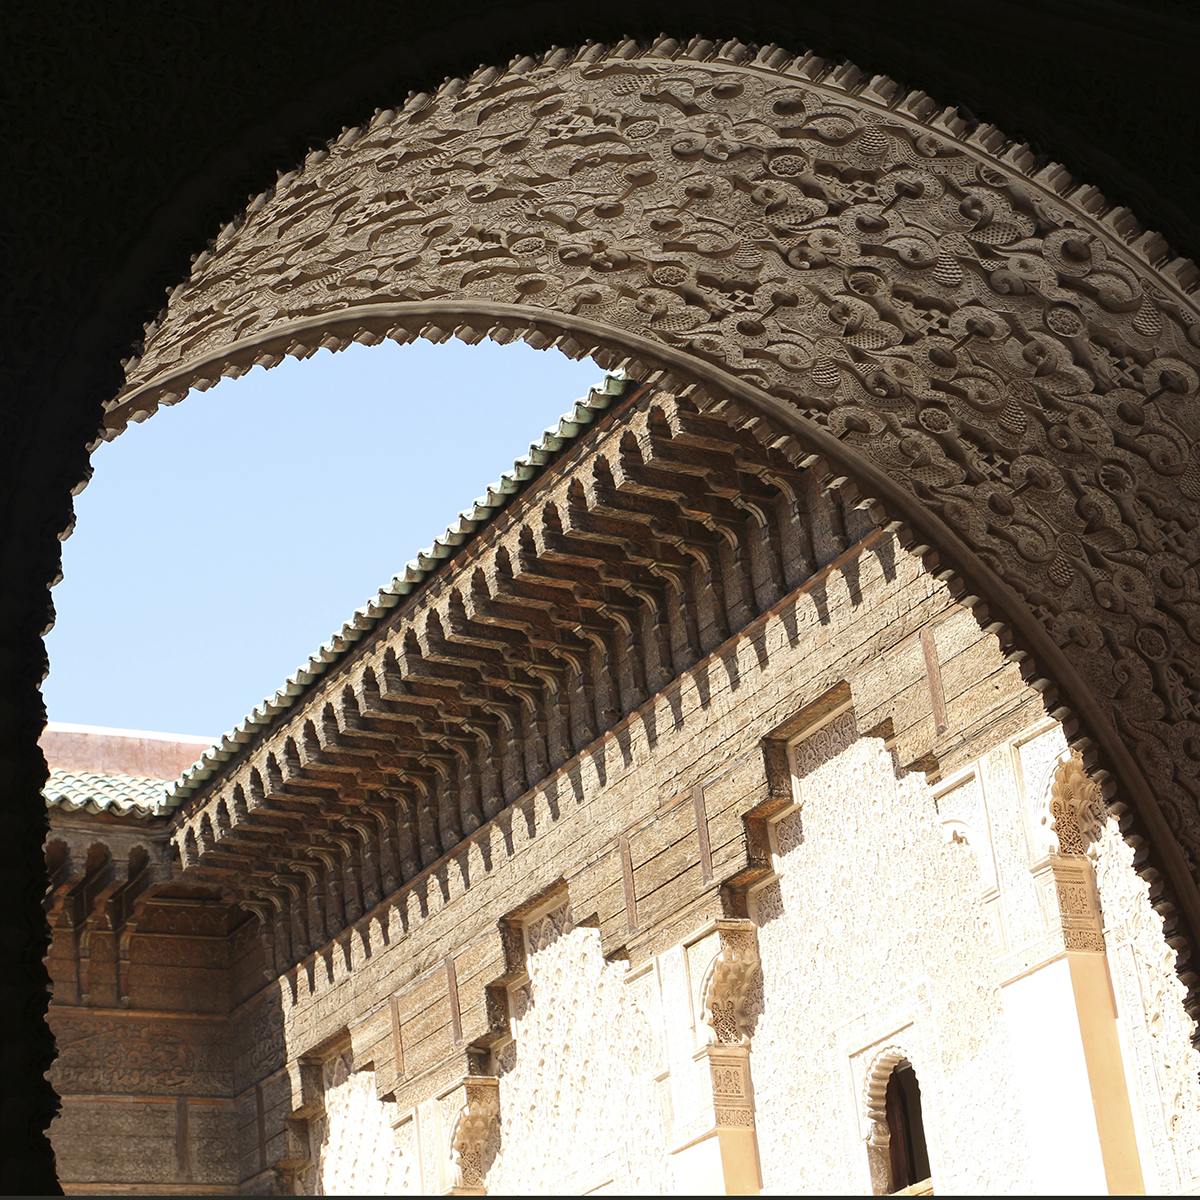 Blog de viajes. Madraza de Marrakech